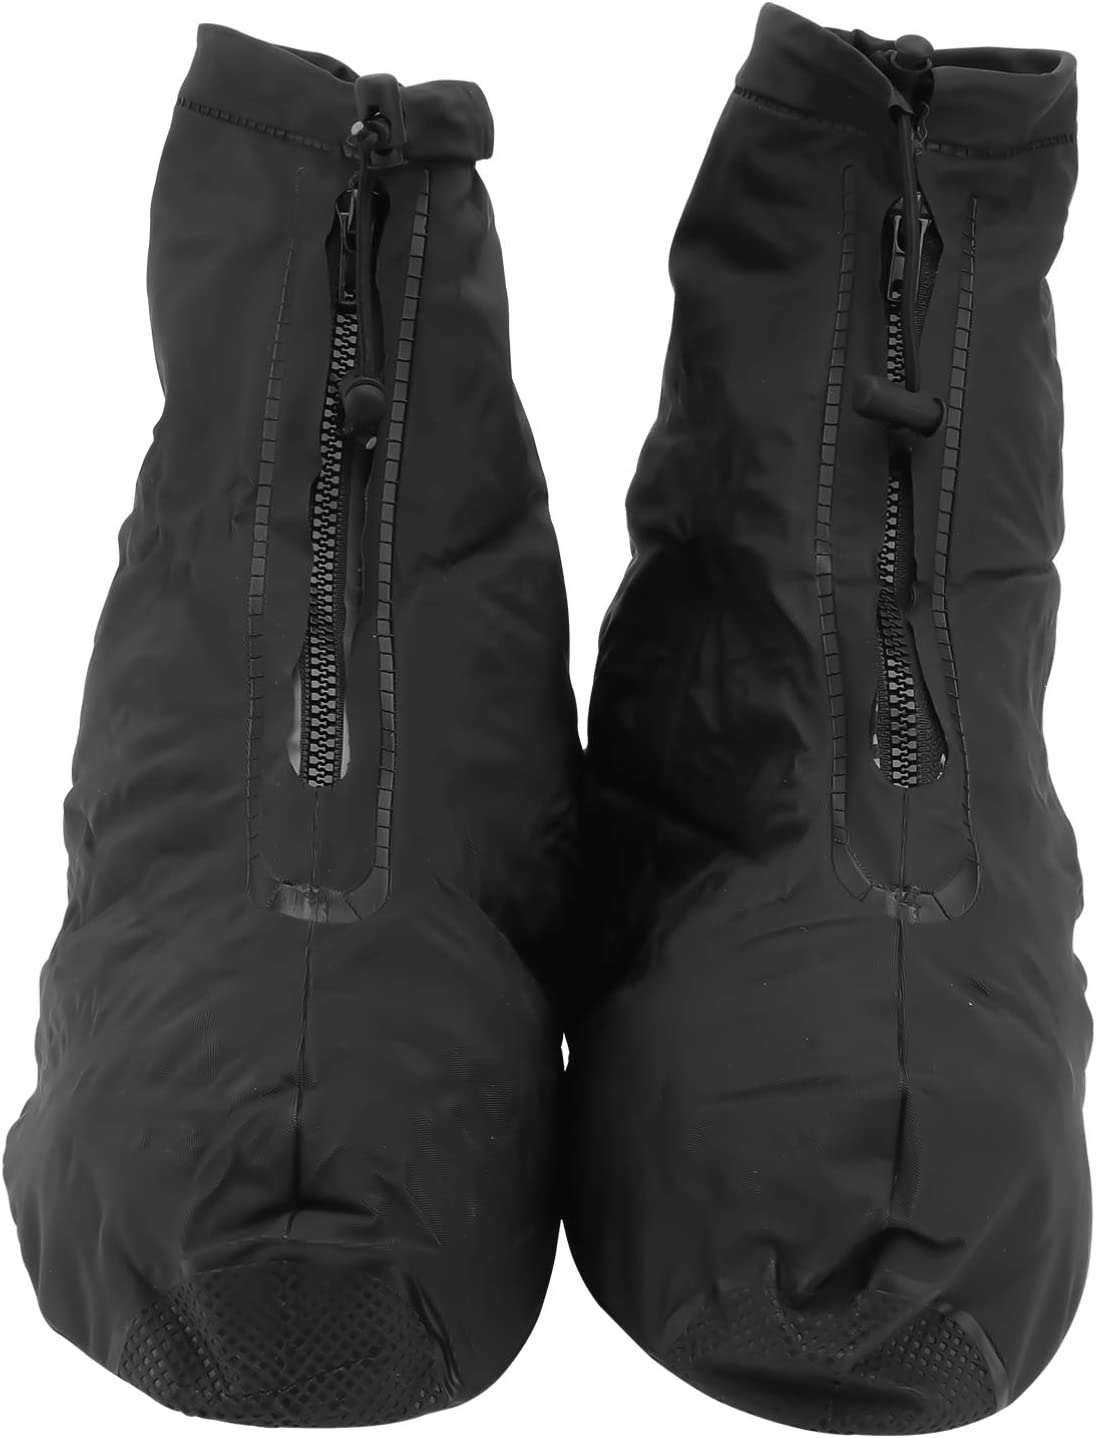 Holibanna Waterproof Bike Motorcycle Shoes Covers Boot Rain Snow 35% OFF 35% OFF